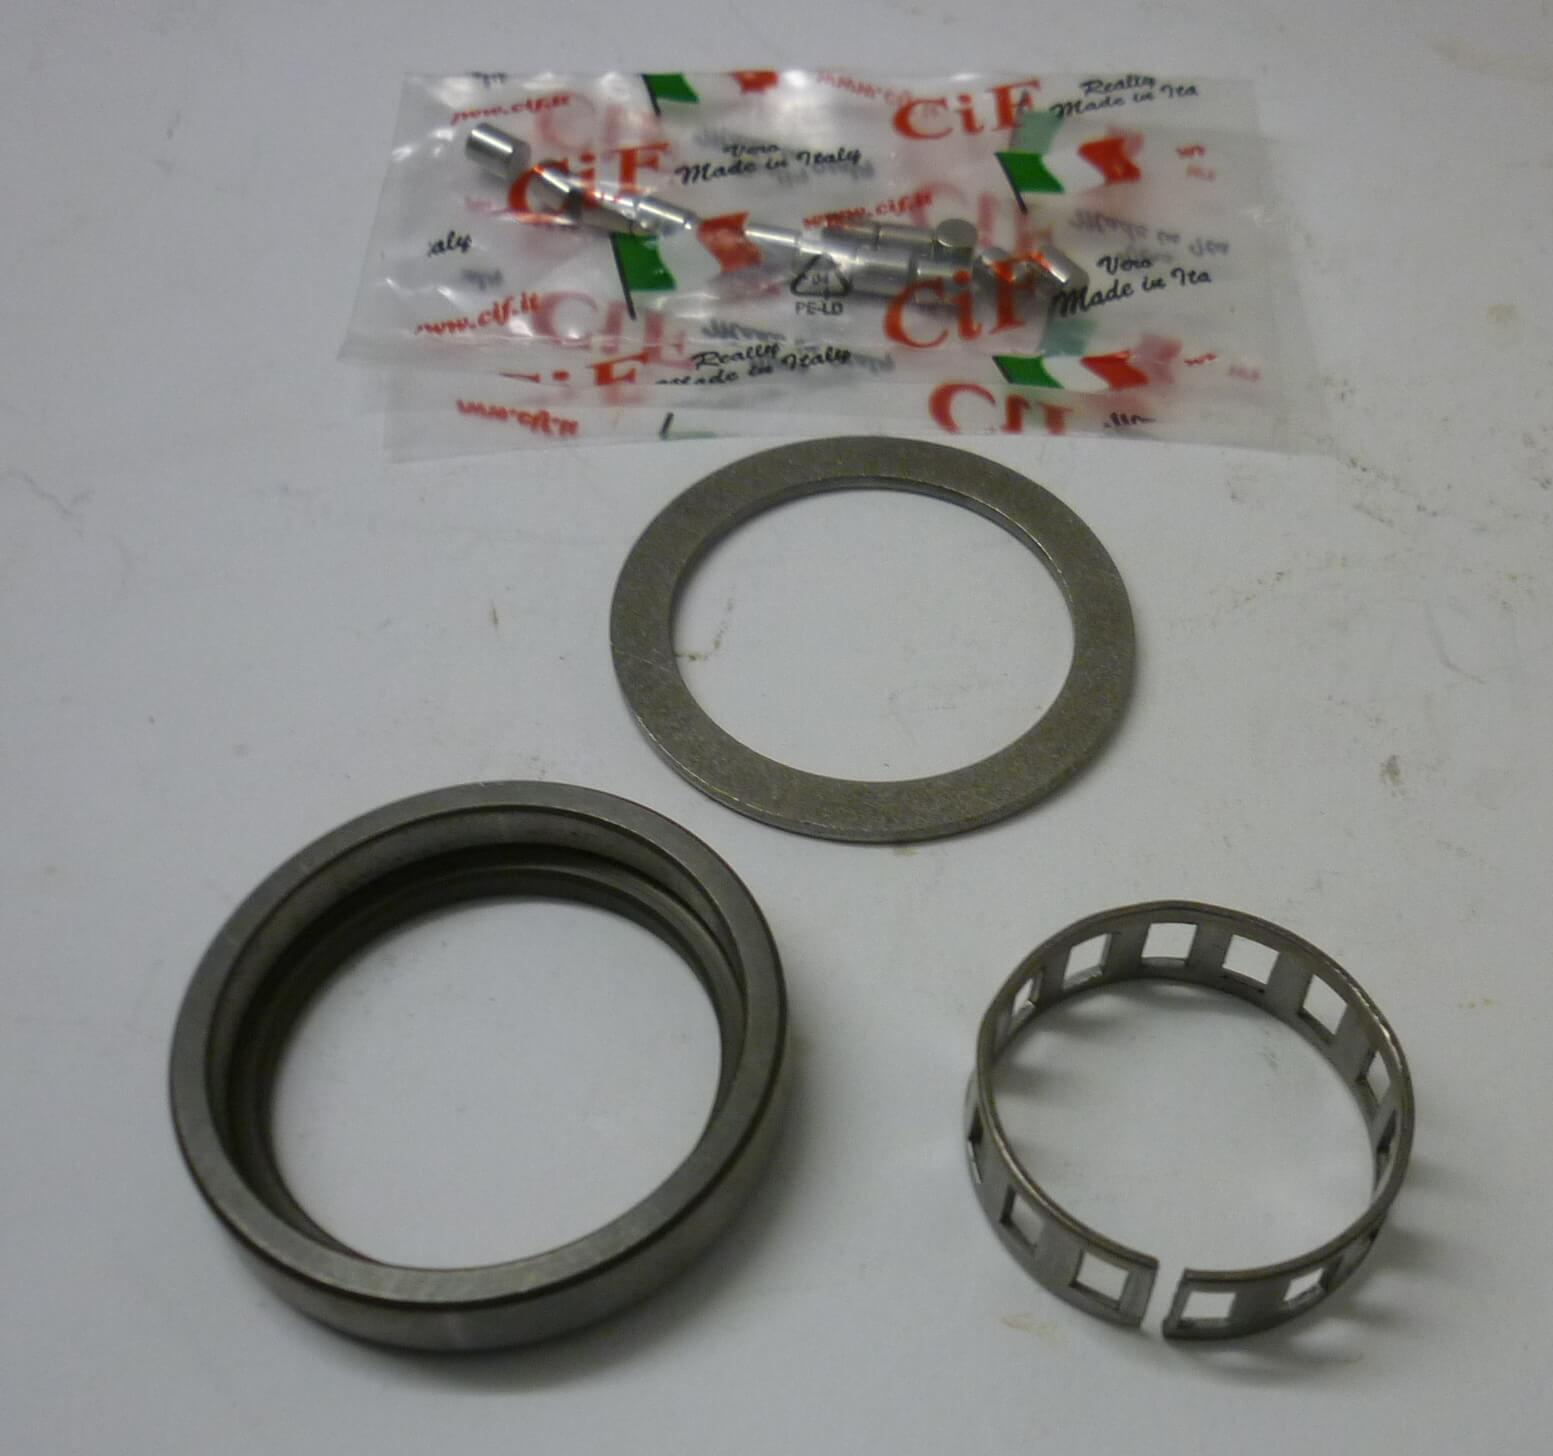 Bearing kit for drive shaft, gear selector side, Vespa 125 / 150